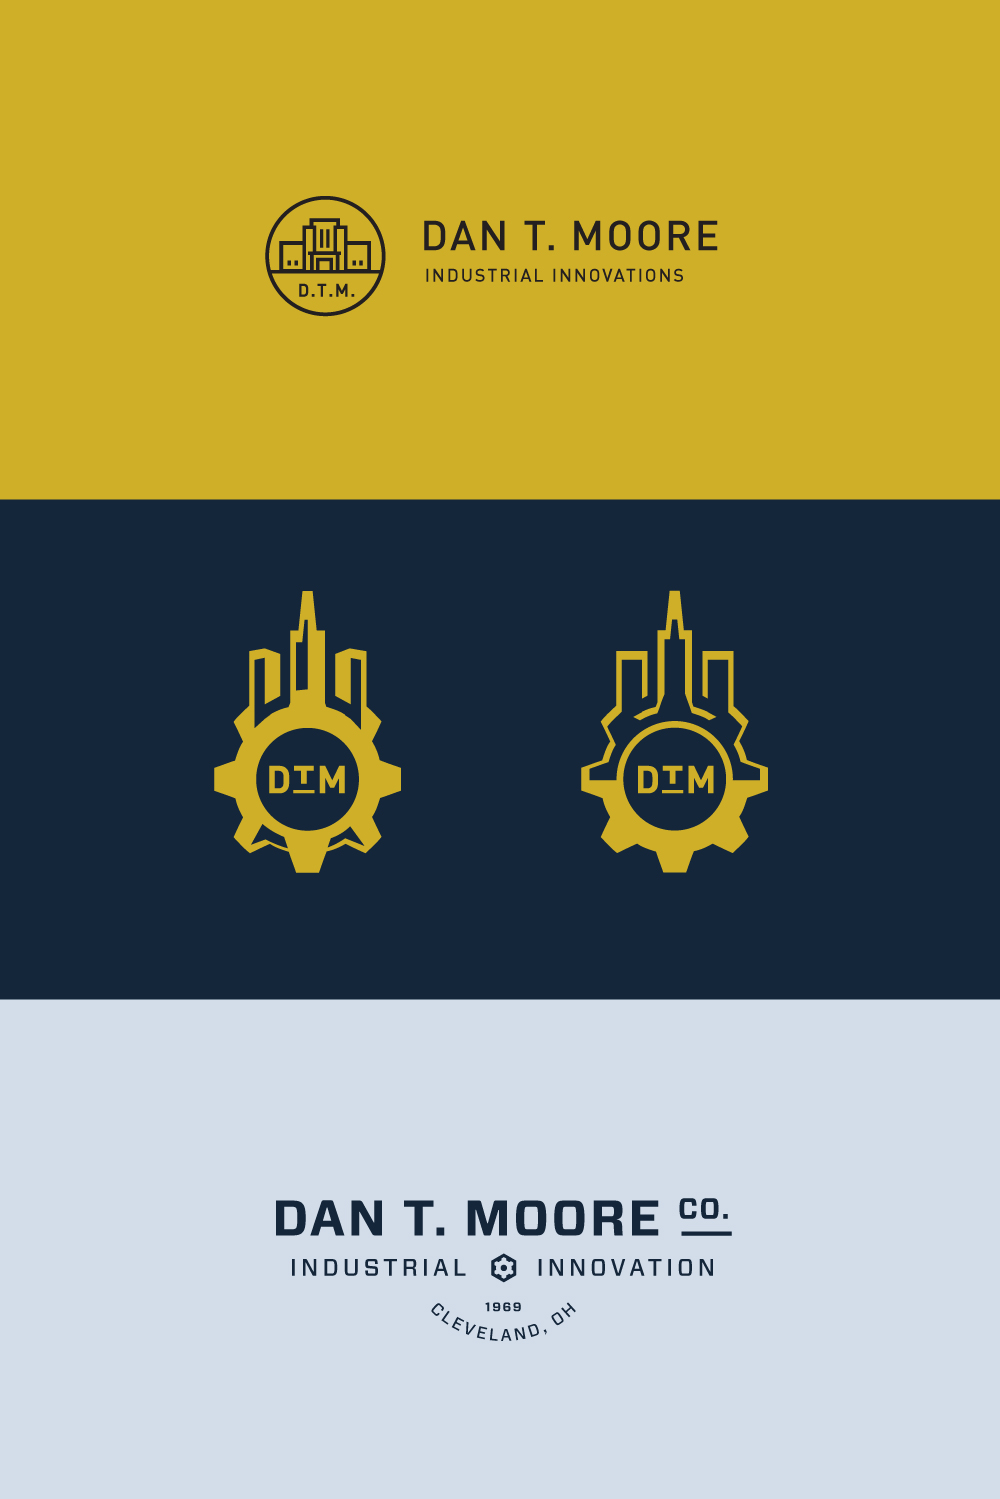 Dan T. Moore Alternates